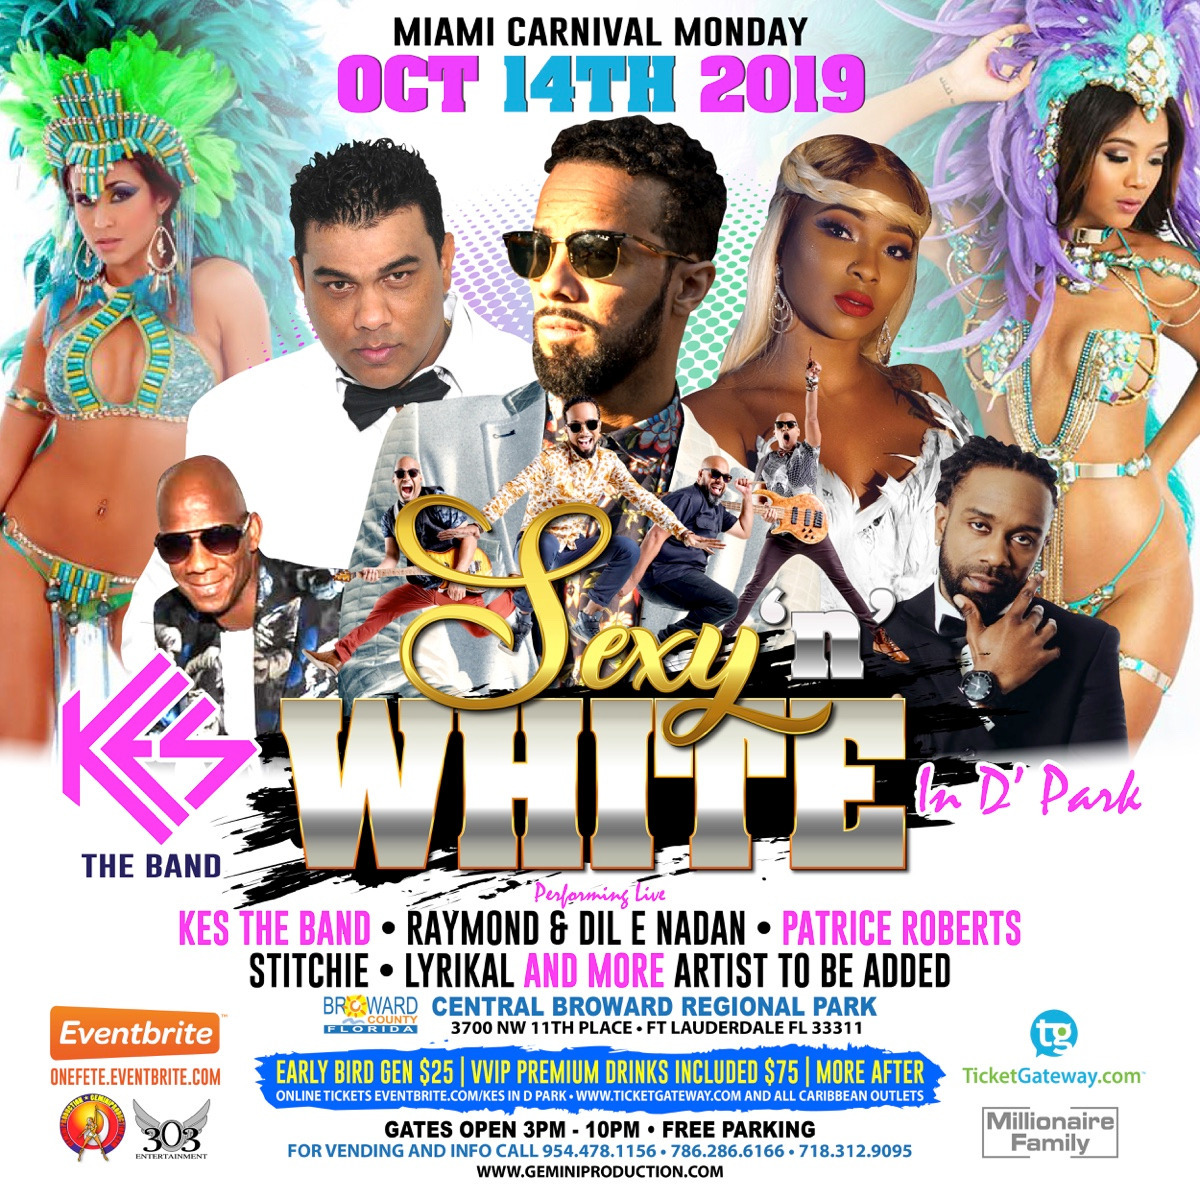 KES THE BAND IN D PARK - MIAMI CARNIVAL MONDAY 2019